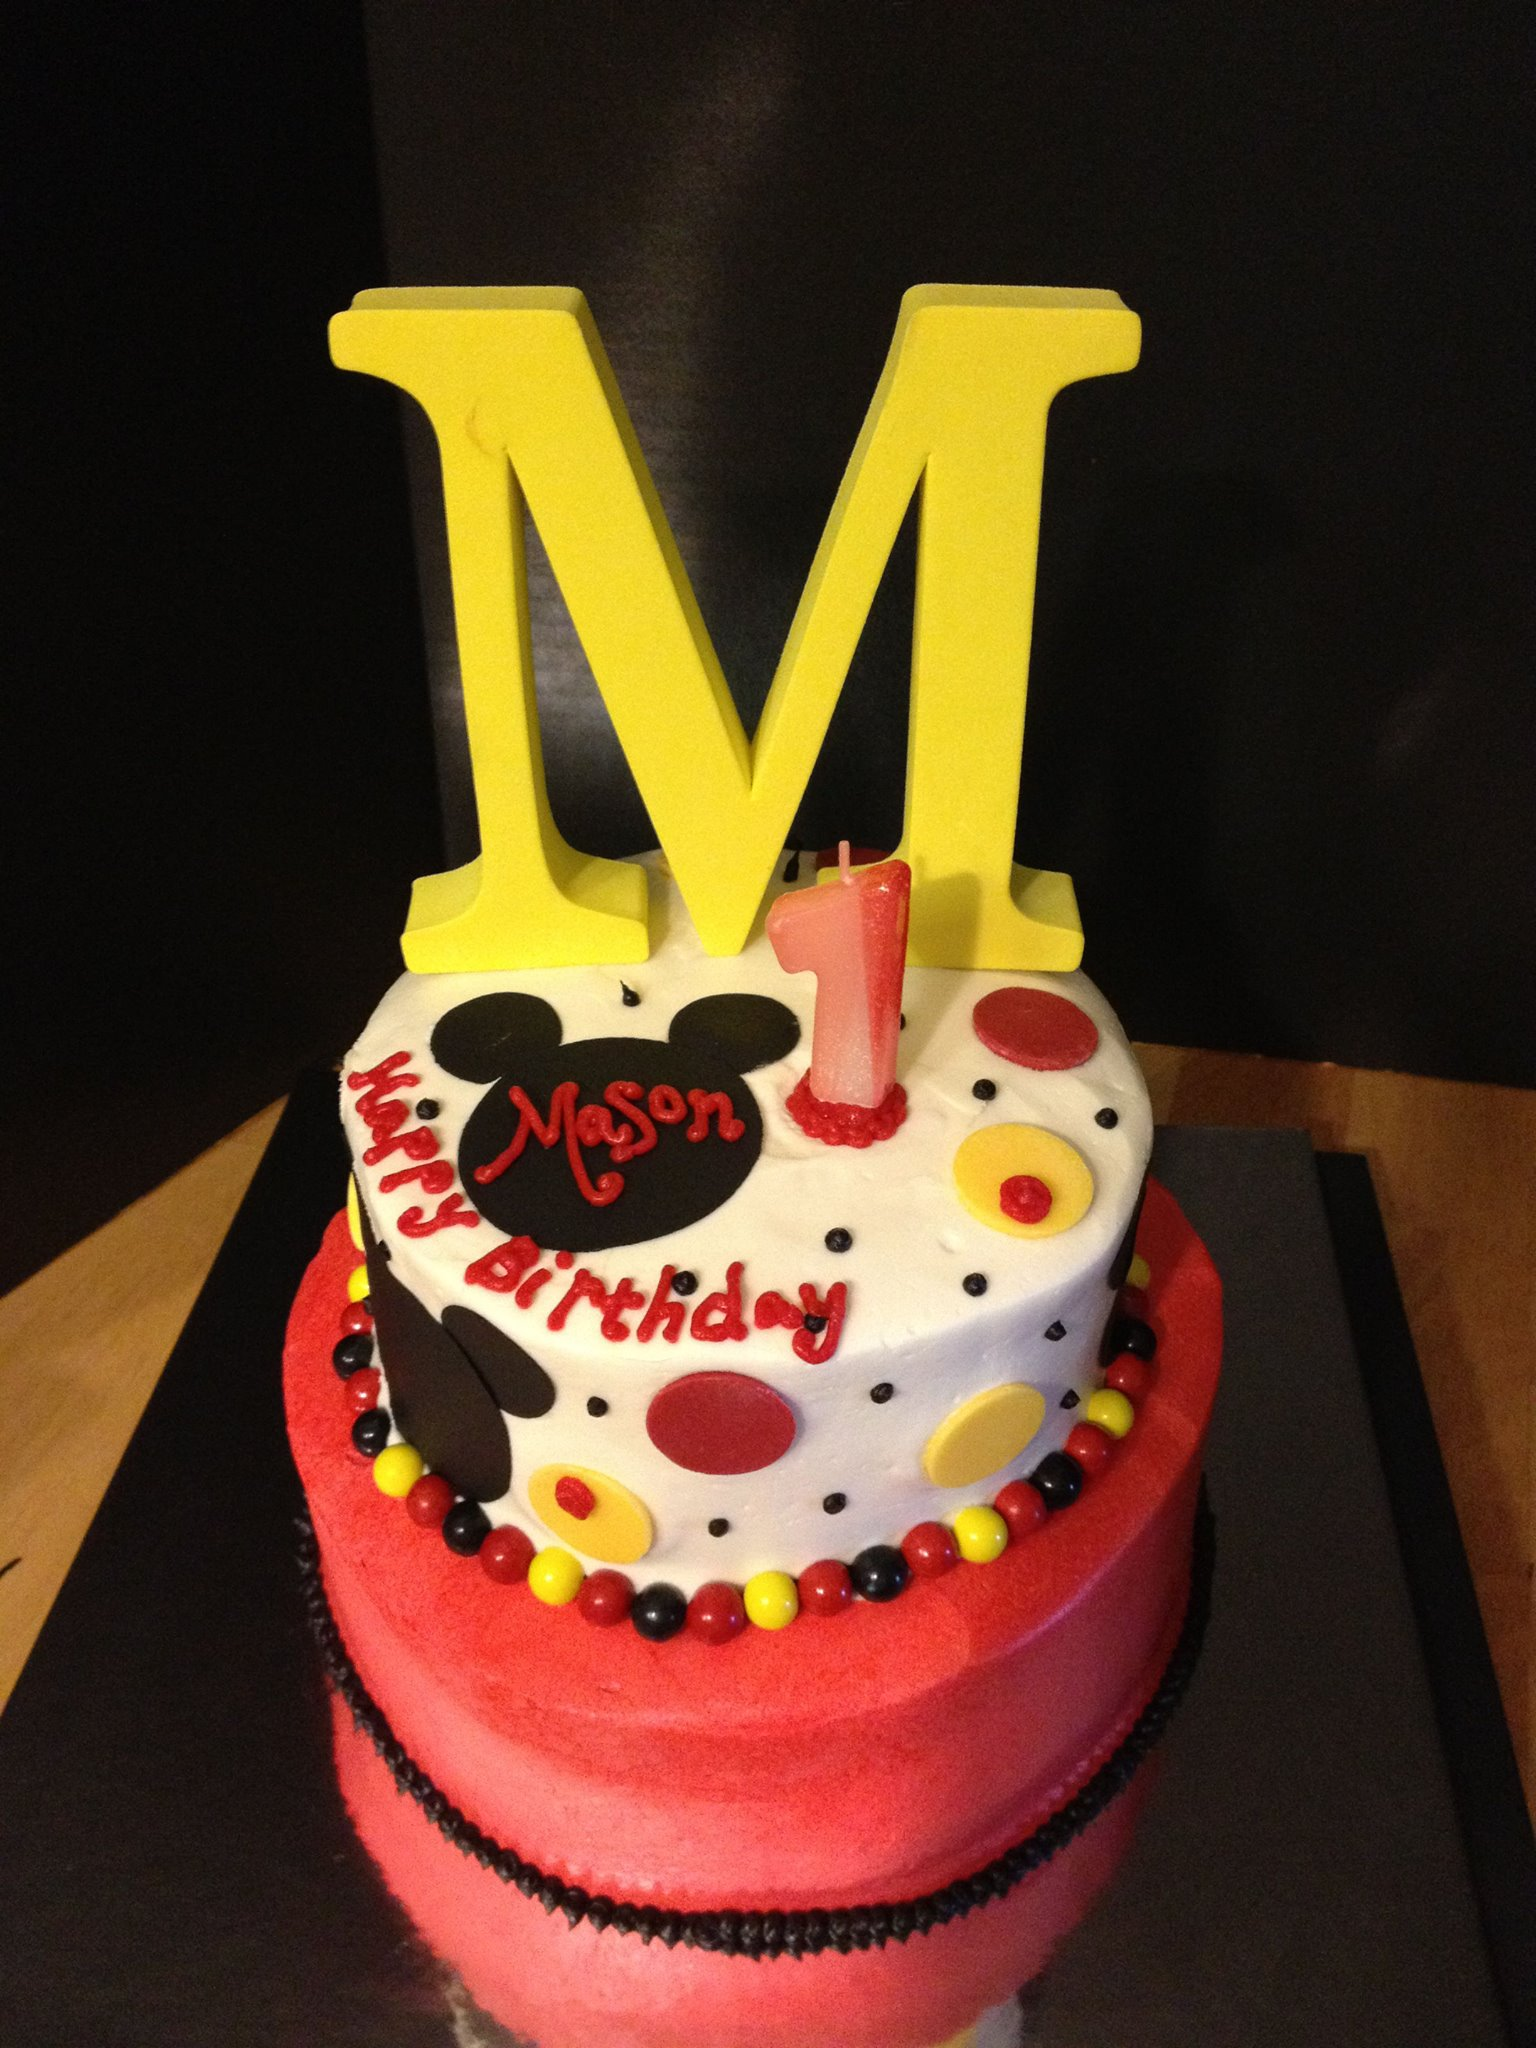 Disney Mickey Mouse Themed Cake with fondant and sugar sheet decor topped with a foam M